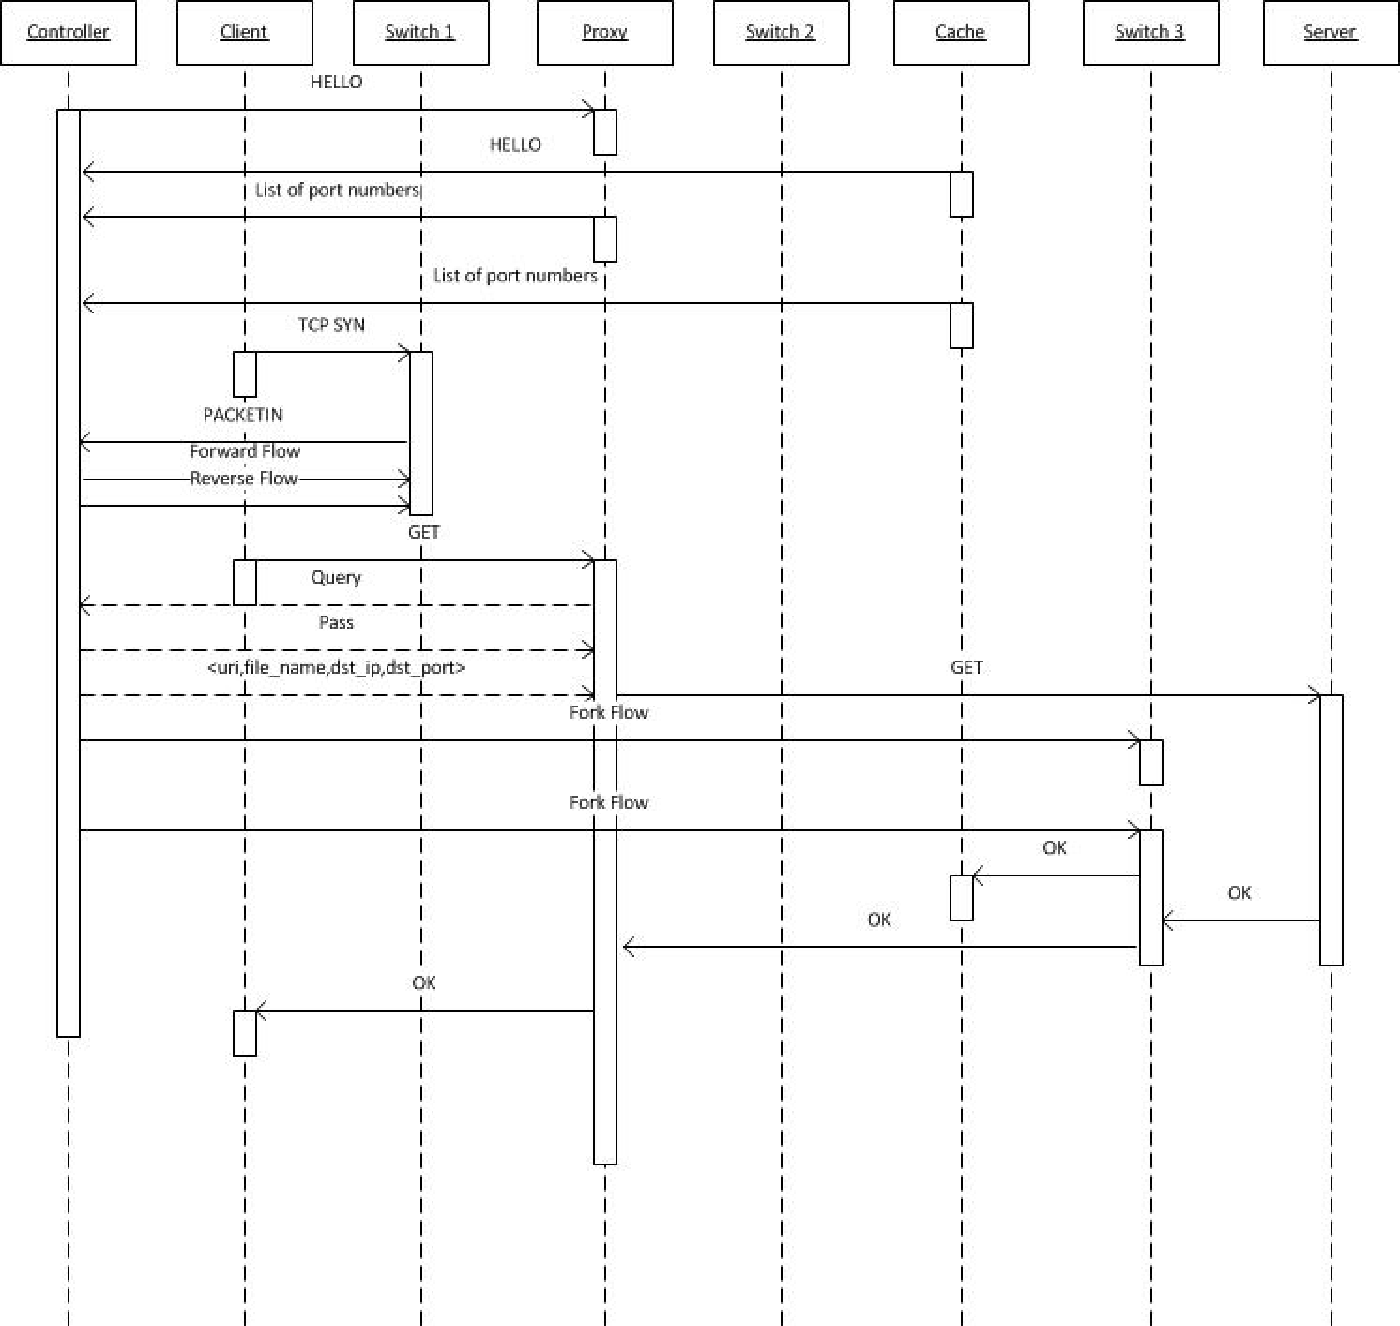 Fig. 3. Sequence diagram of the system